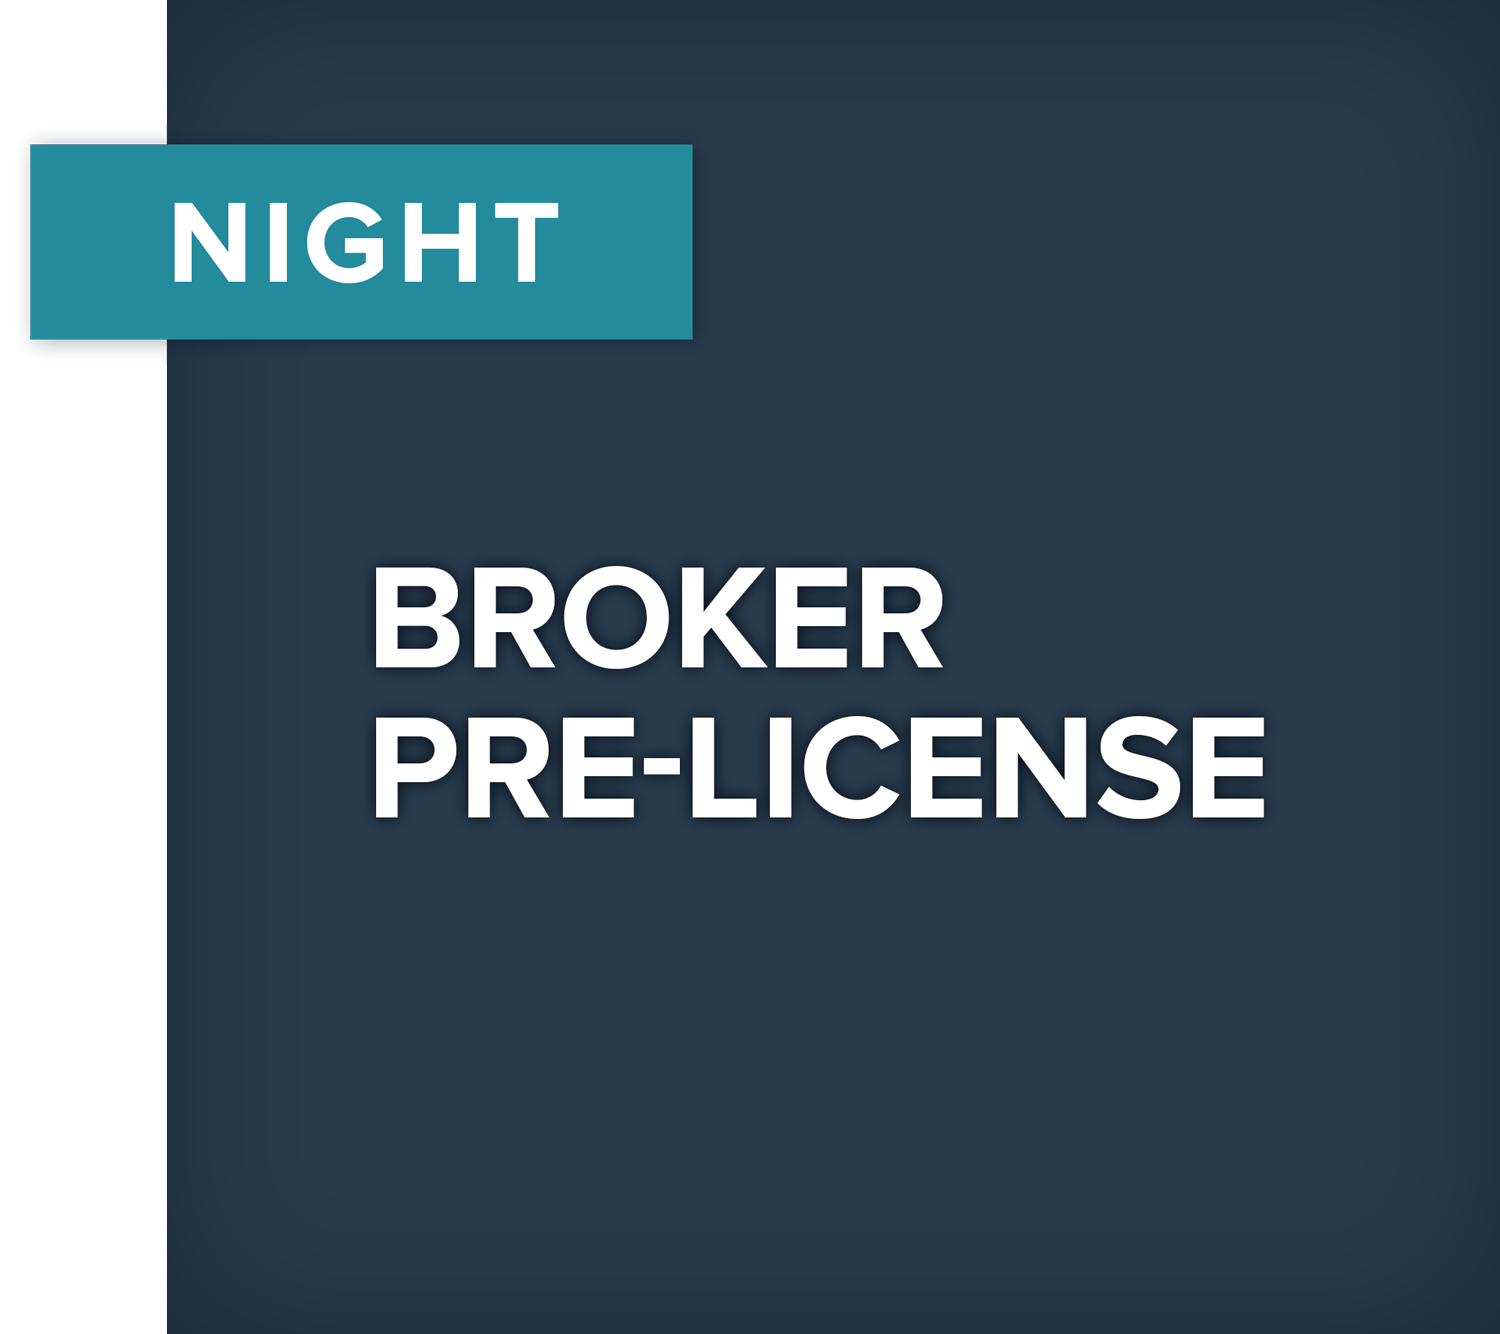 Real Estate Broker Pre-License Courses in North Carolina